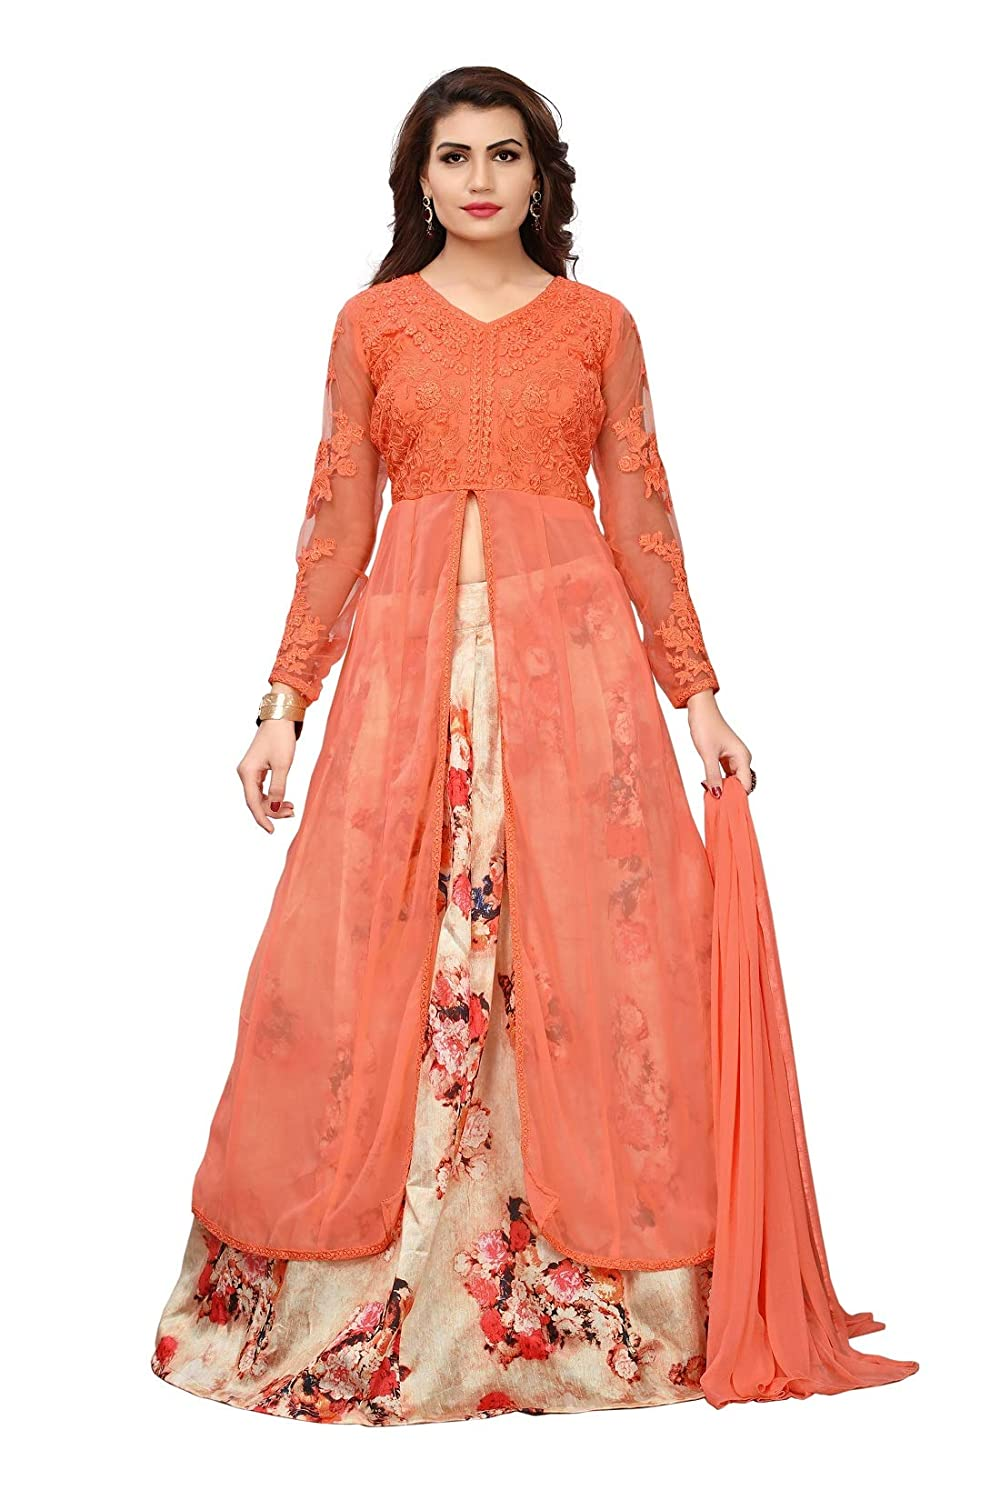 8fba024420 Saree CollectionWomen's Georgette Embroidery Indo Western Suit  (S012-Maskeen-Peach-Sco53_Peach_Free Size): Amazon.in: Clothing &  Accessories